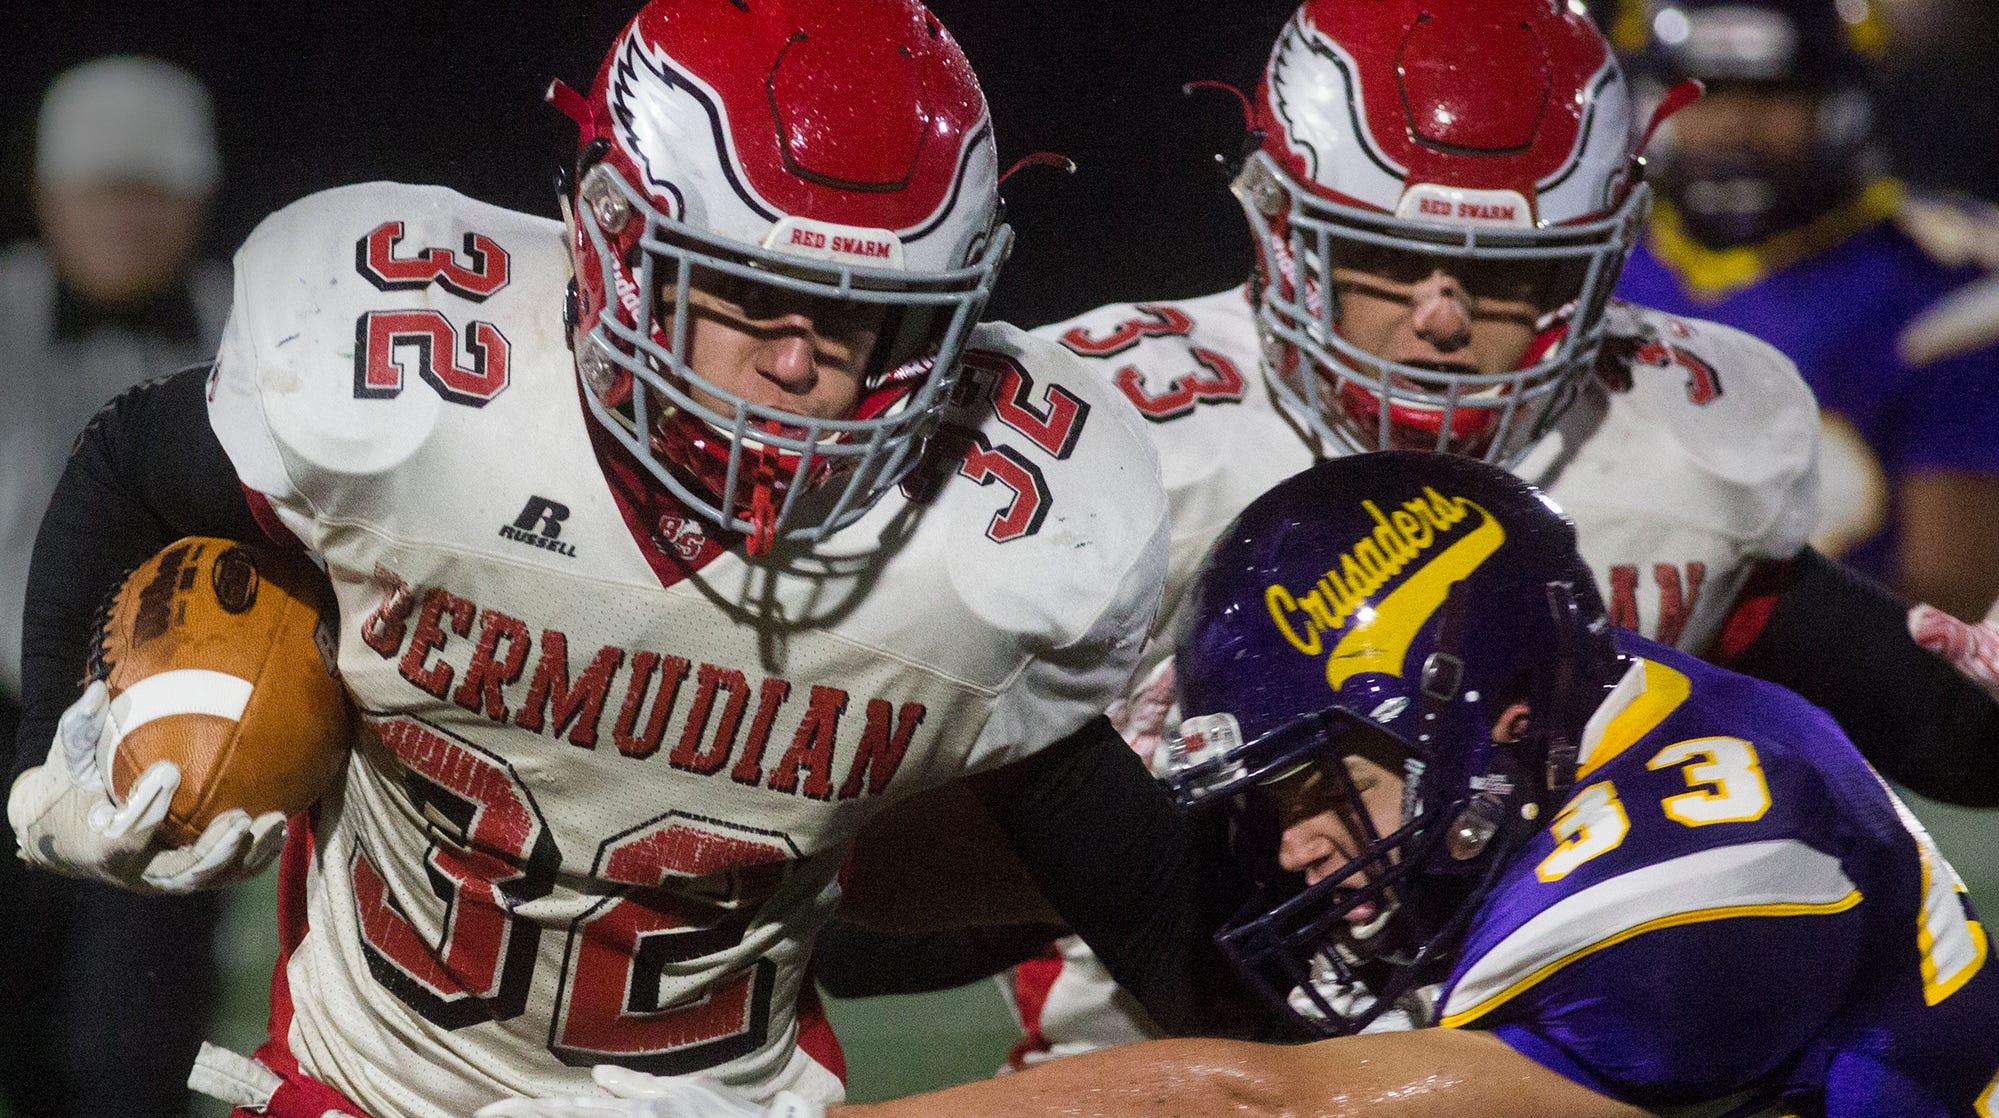 Back to business: Bermudian Springs player overcomes injury to bolster playoff run